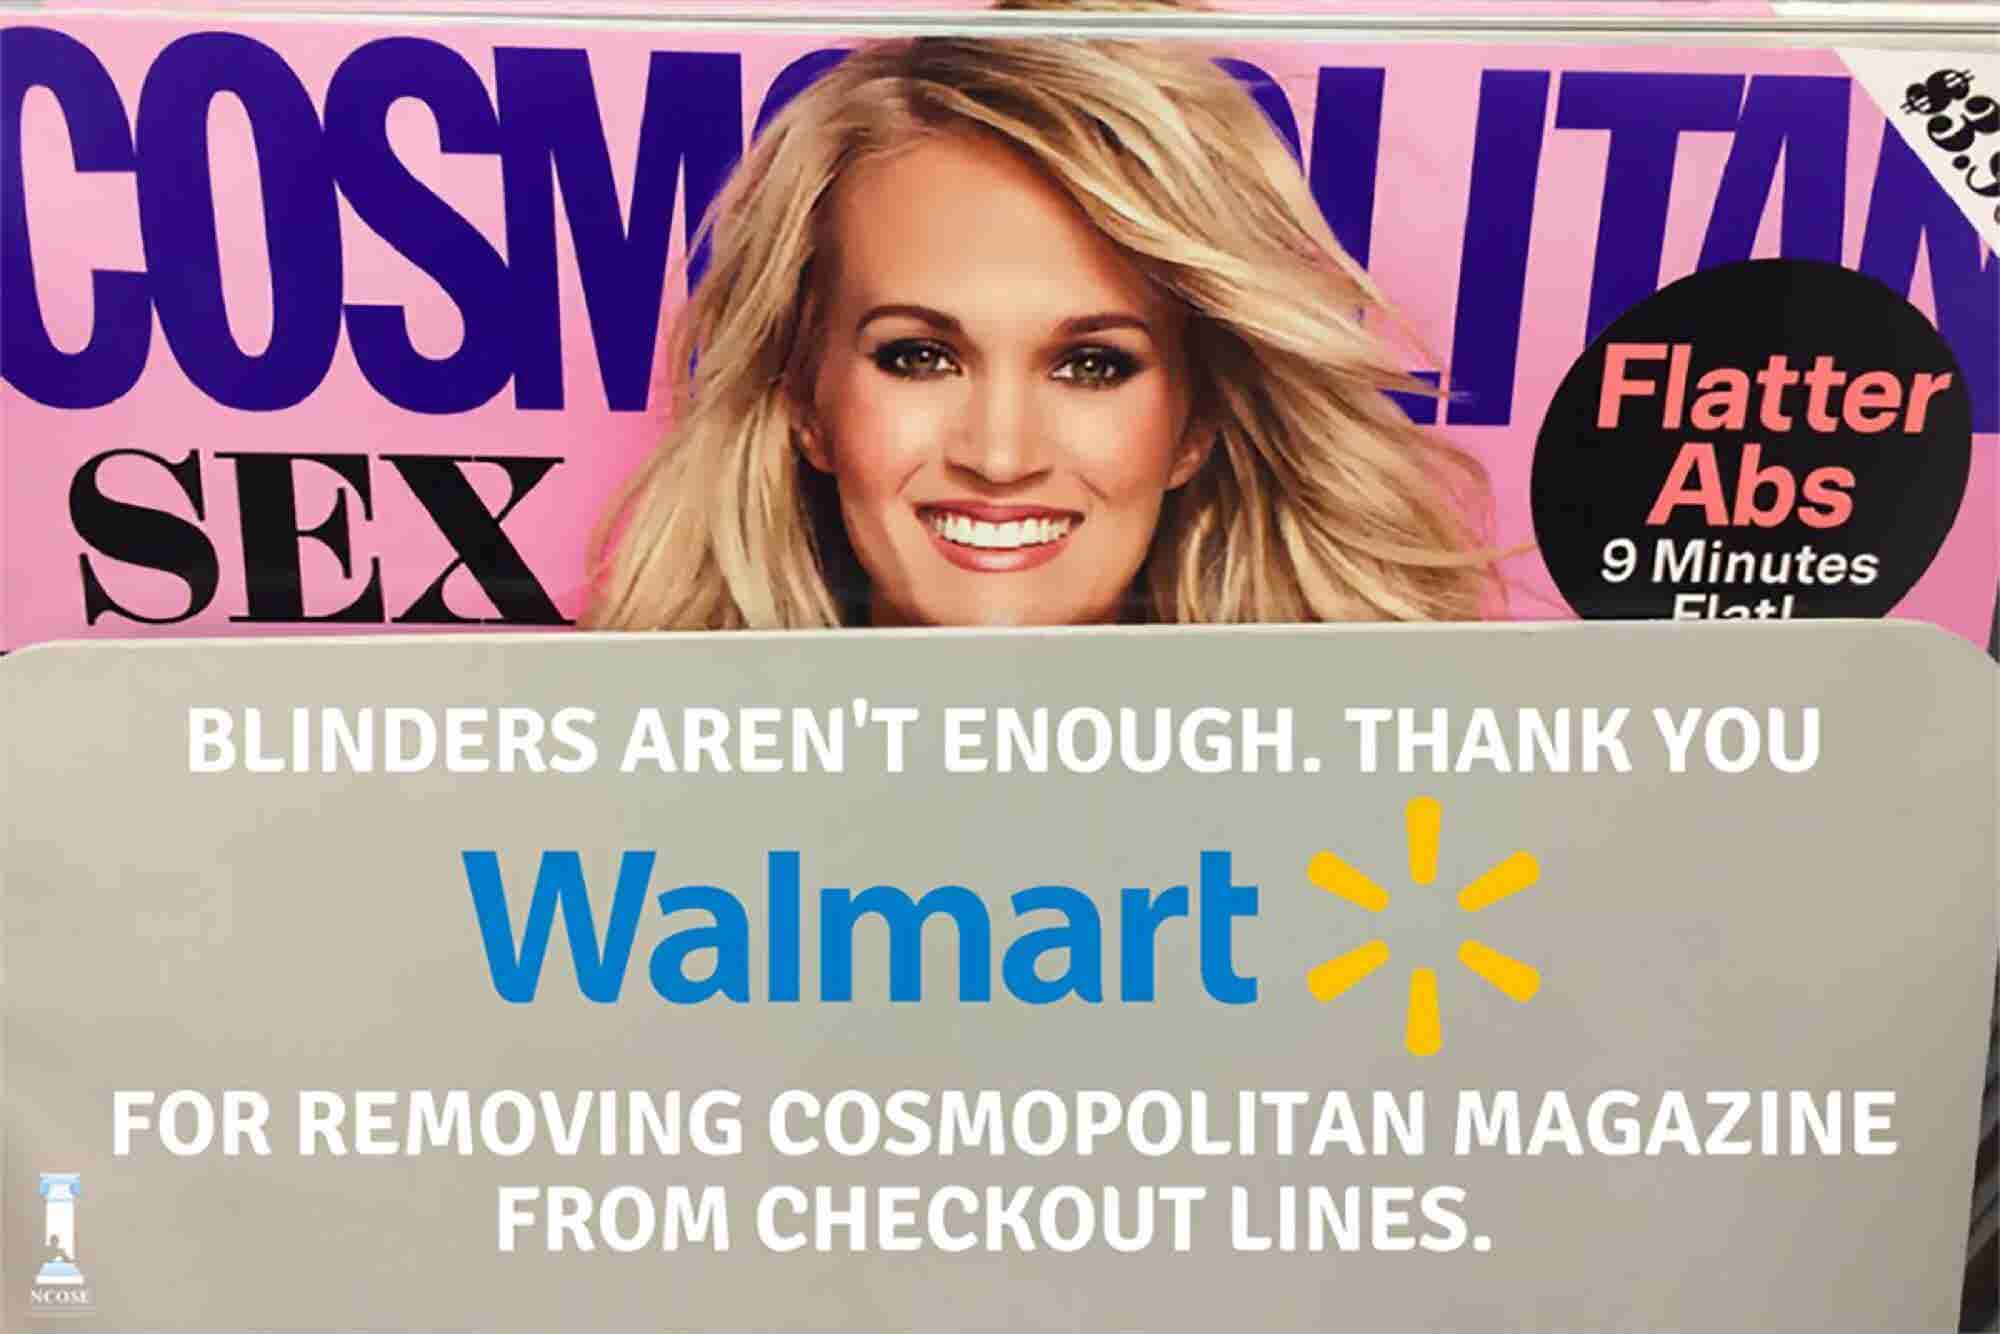 Walmart Is Pulling Cosmopolitan From Checkout Lines in Response to #MeToo -- But It's an Embarrassing Perversion of the Movement